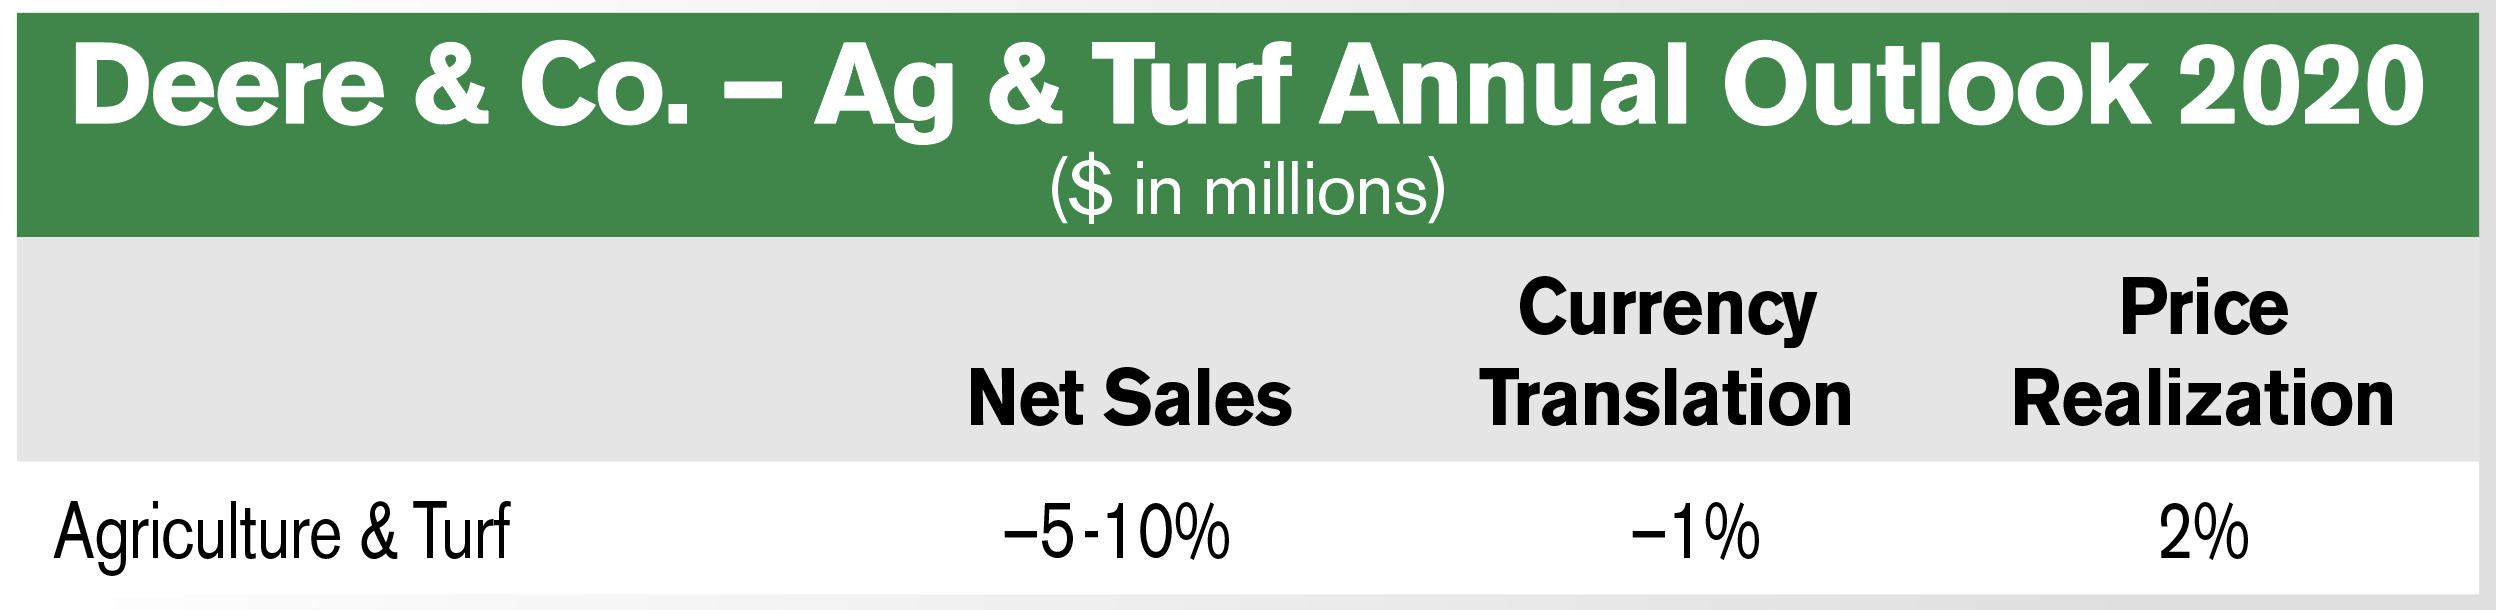 Deere Ag & Turf Sales 2020 Outlook